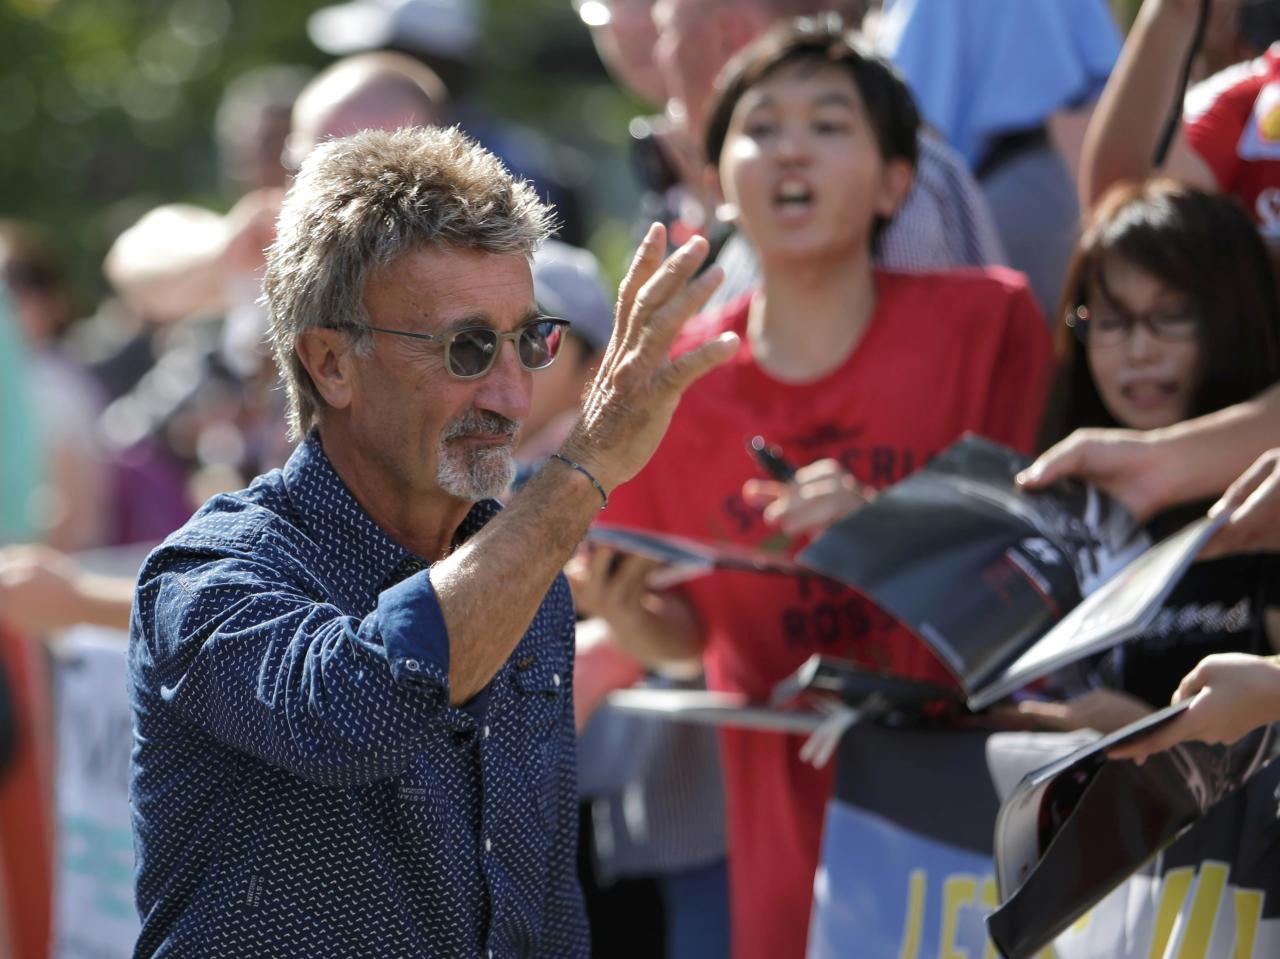 Former race driver Eddie Jordan of Ireland arrives at the track ahead of the third practice session of the Singapore F1 Grand Prix at the Marina Bay street circuit in Singapore September 21, 2013. REUTERS/Tim Chong (SINGAPORE - Tags: SPORT MOTORSPORT F1)